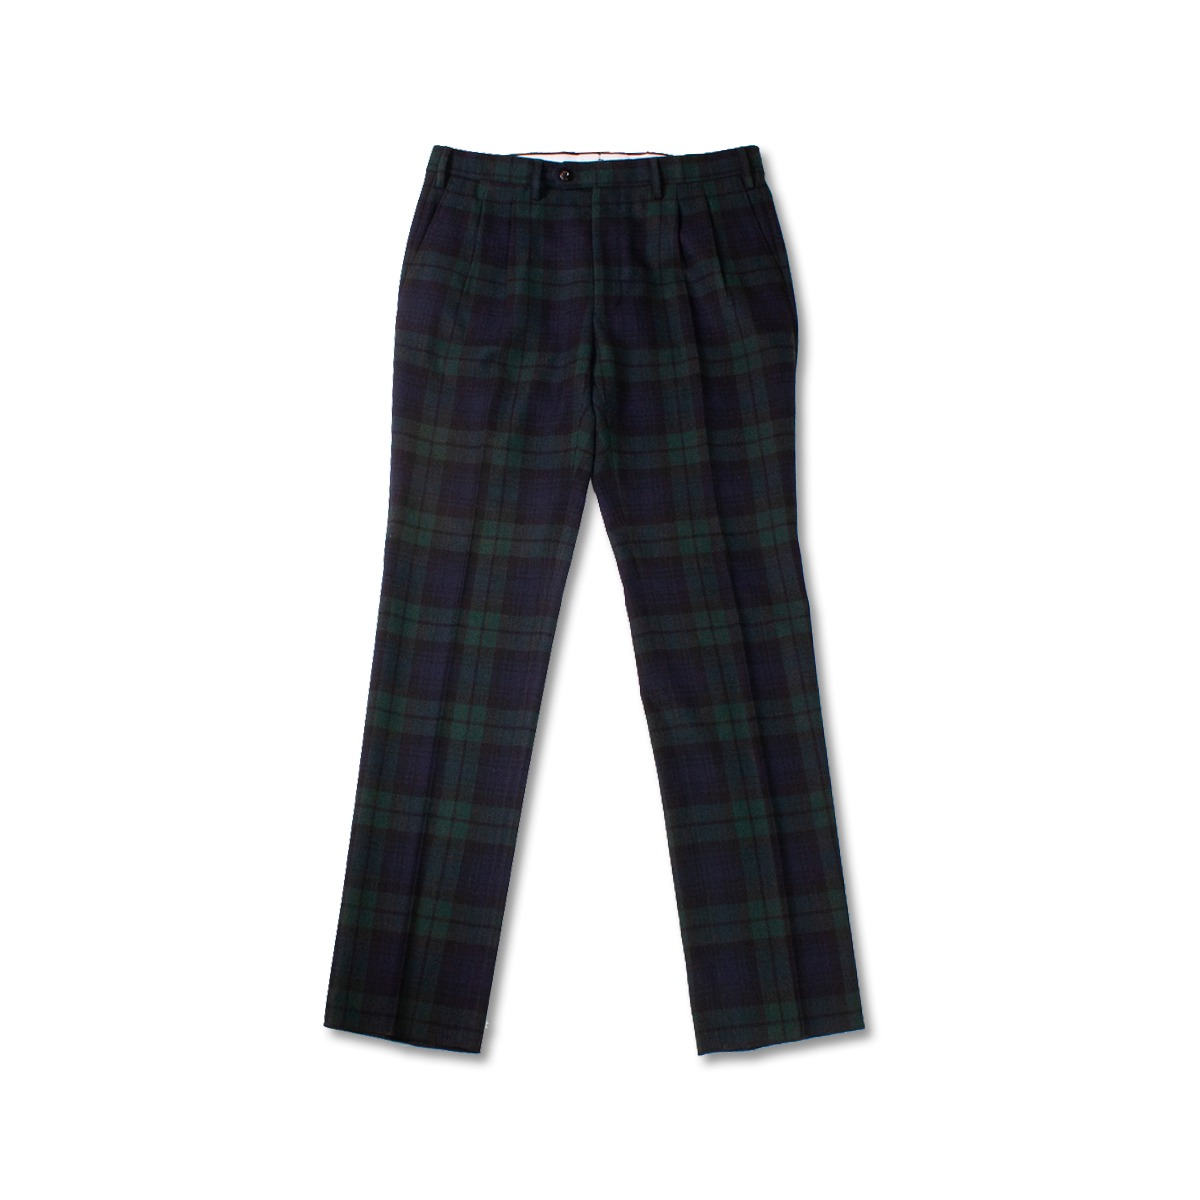 [EAST HARBOUR SURPLUS] HUTCH BLACKWATCH PANTS 'BLACK WATCH'